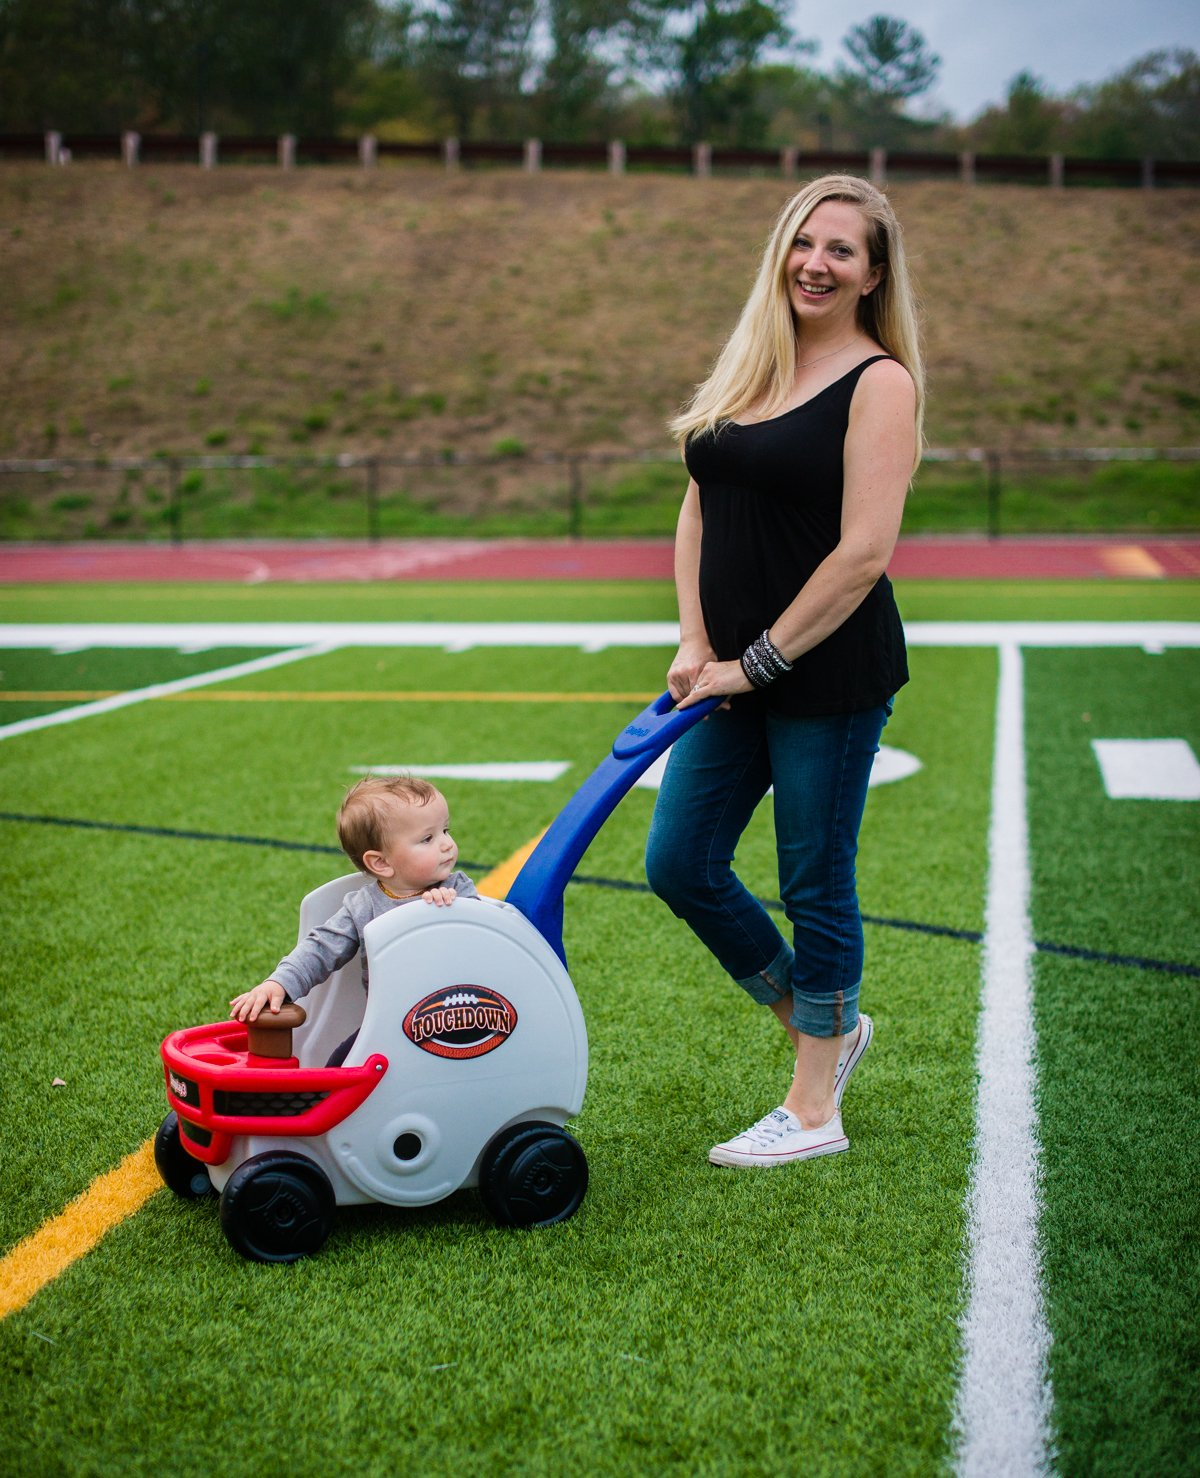 Ditch The Stroller - Fun Ways To Hit The Town This Fall 4 Daily Mom Parents Portal